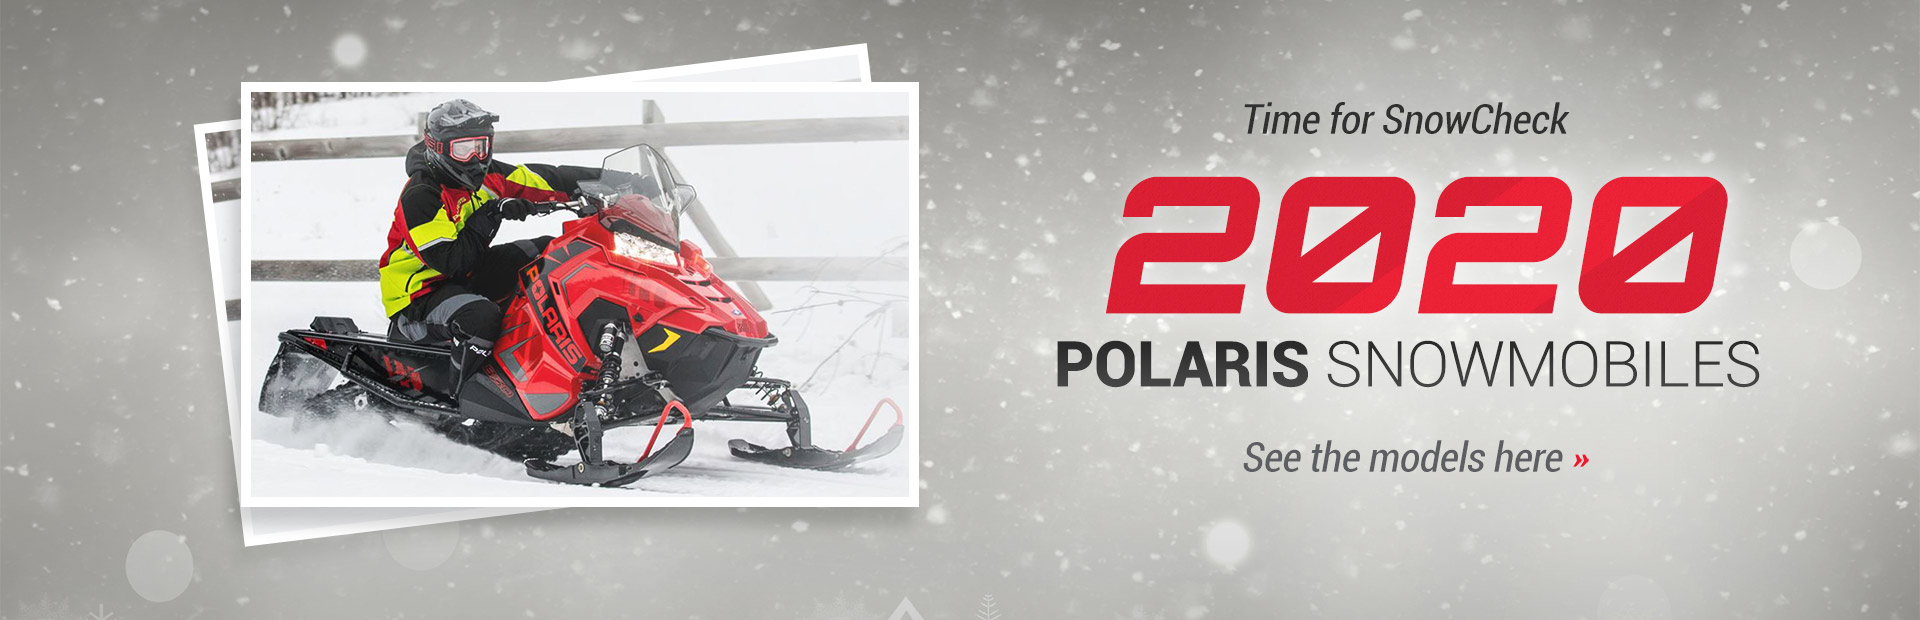 Time for SnowCheck. 2020 Polaris Snowmobiles: Click here to view the models.